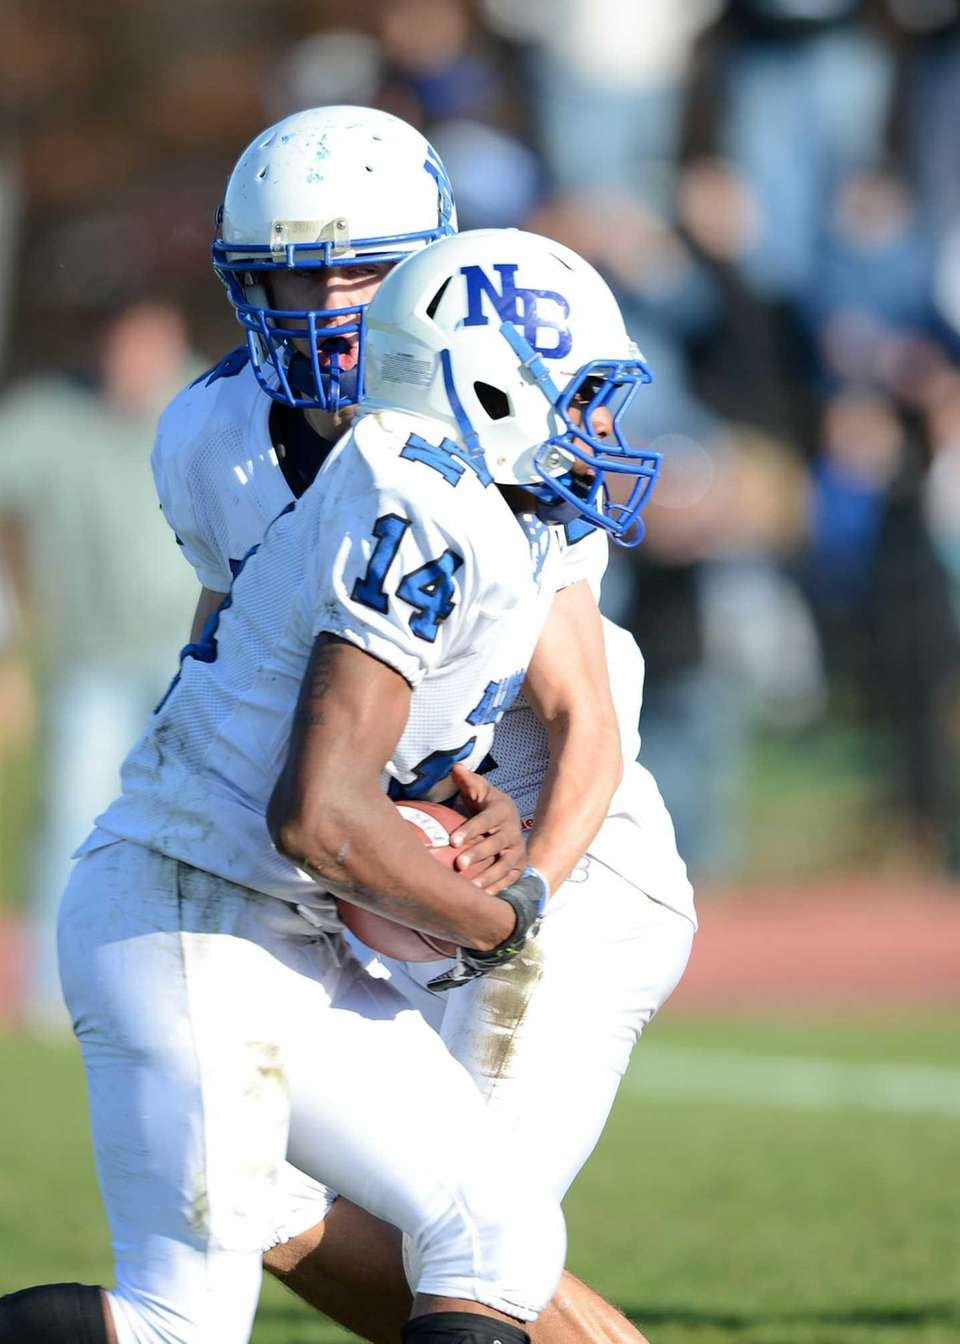 North Babylon's Jake Conner hands off to Melijah